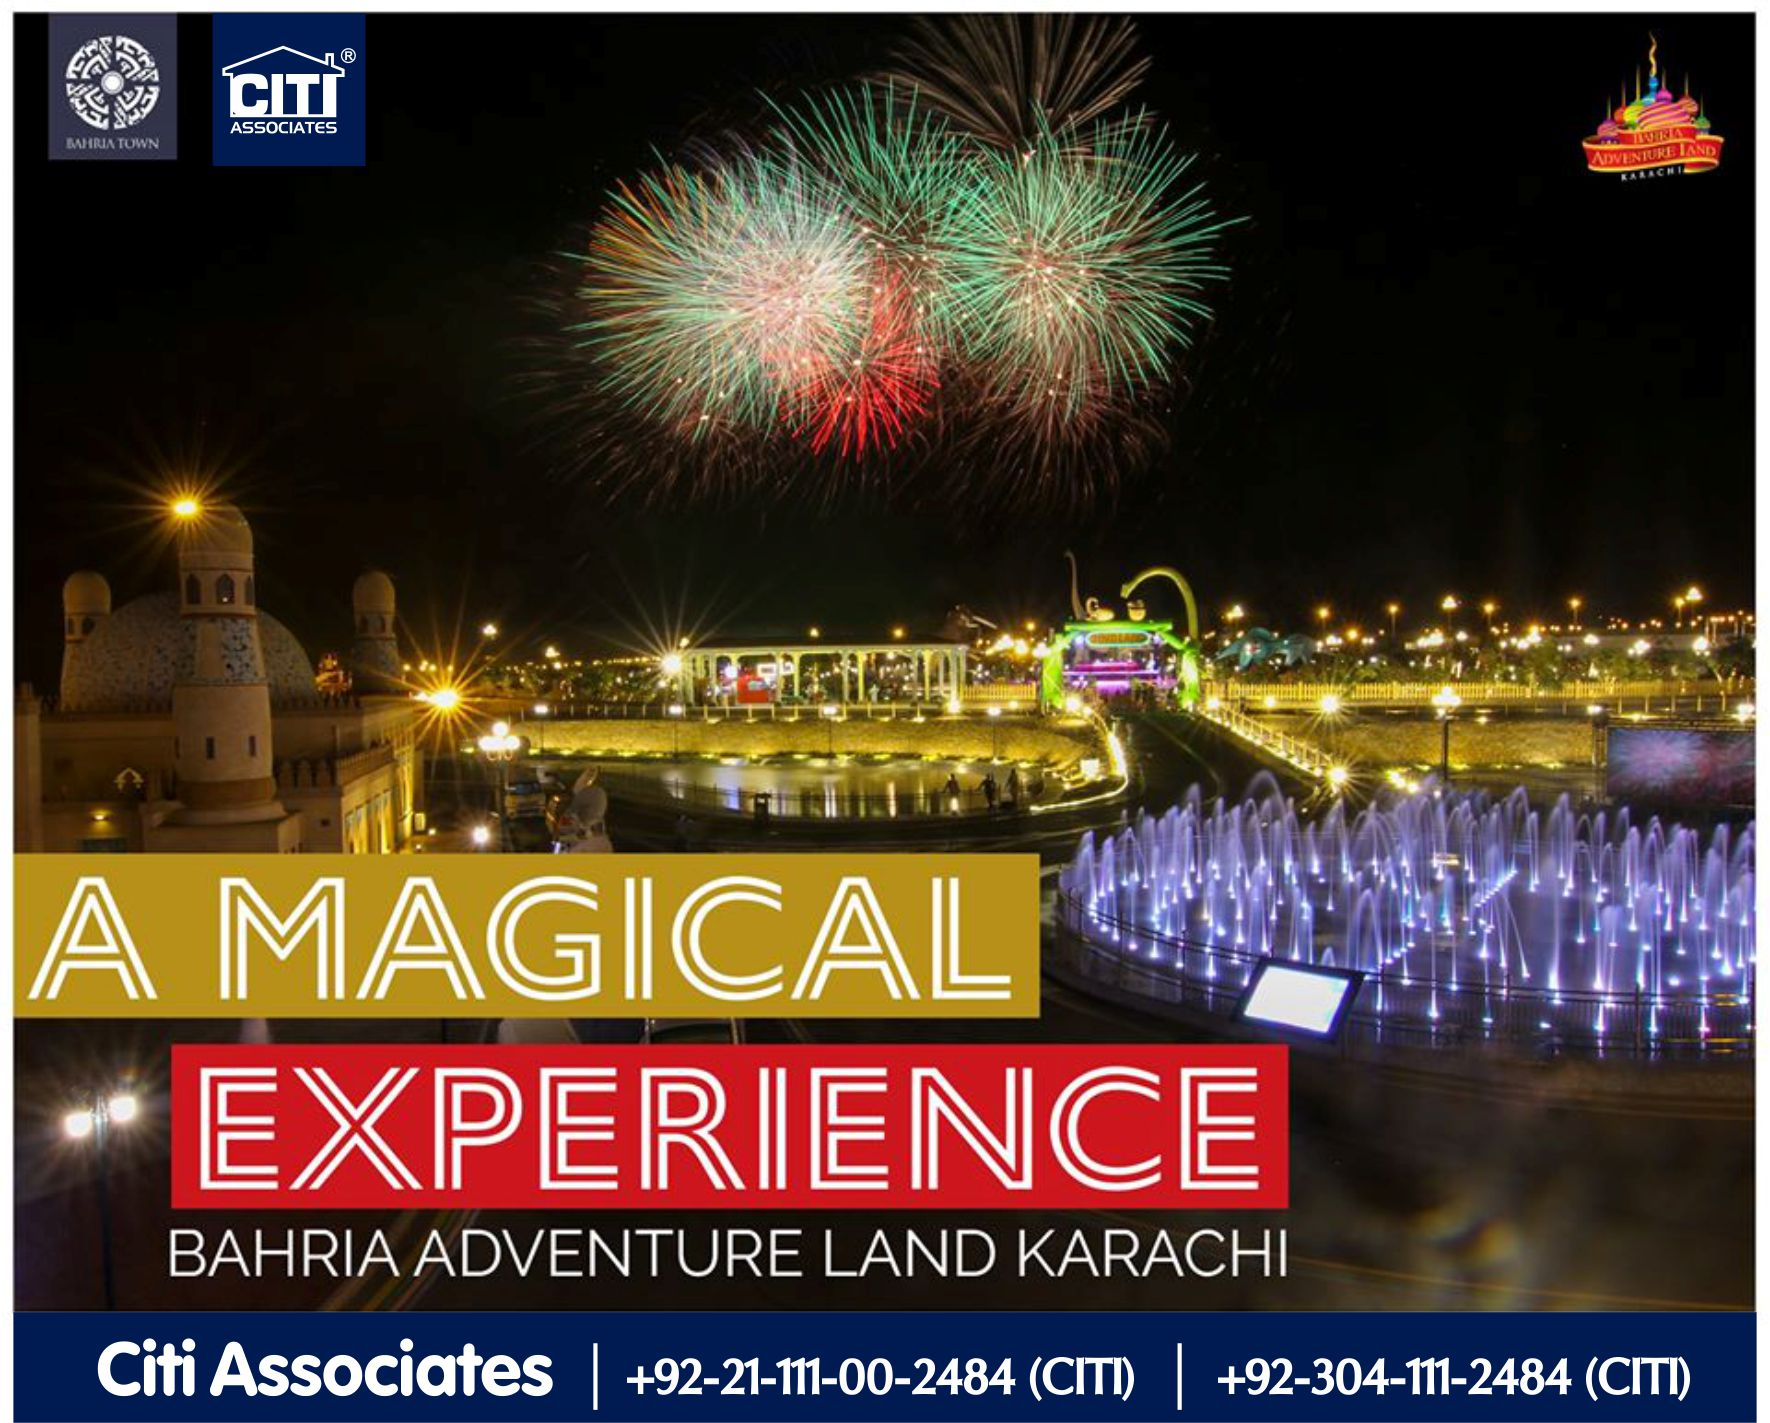 A Magical Experience | Bahria Adventure Land Karachi